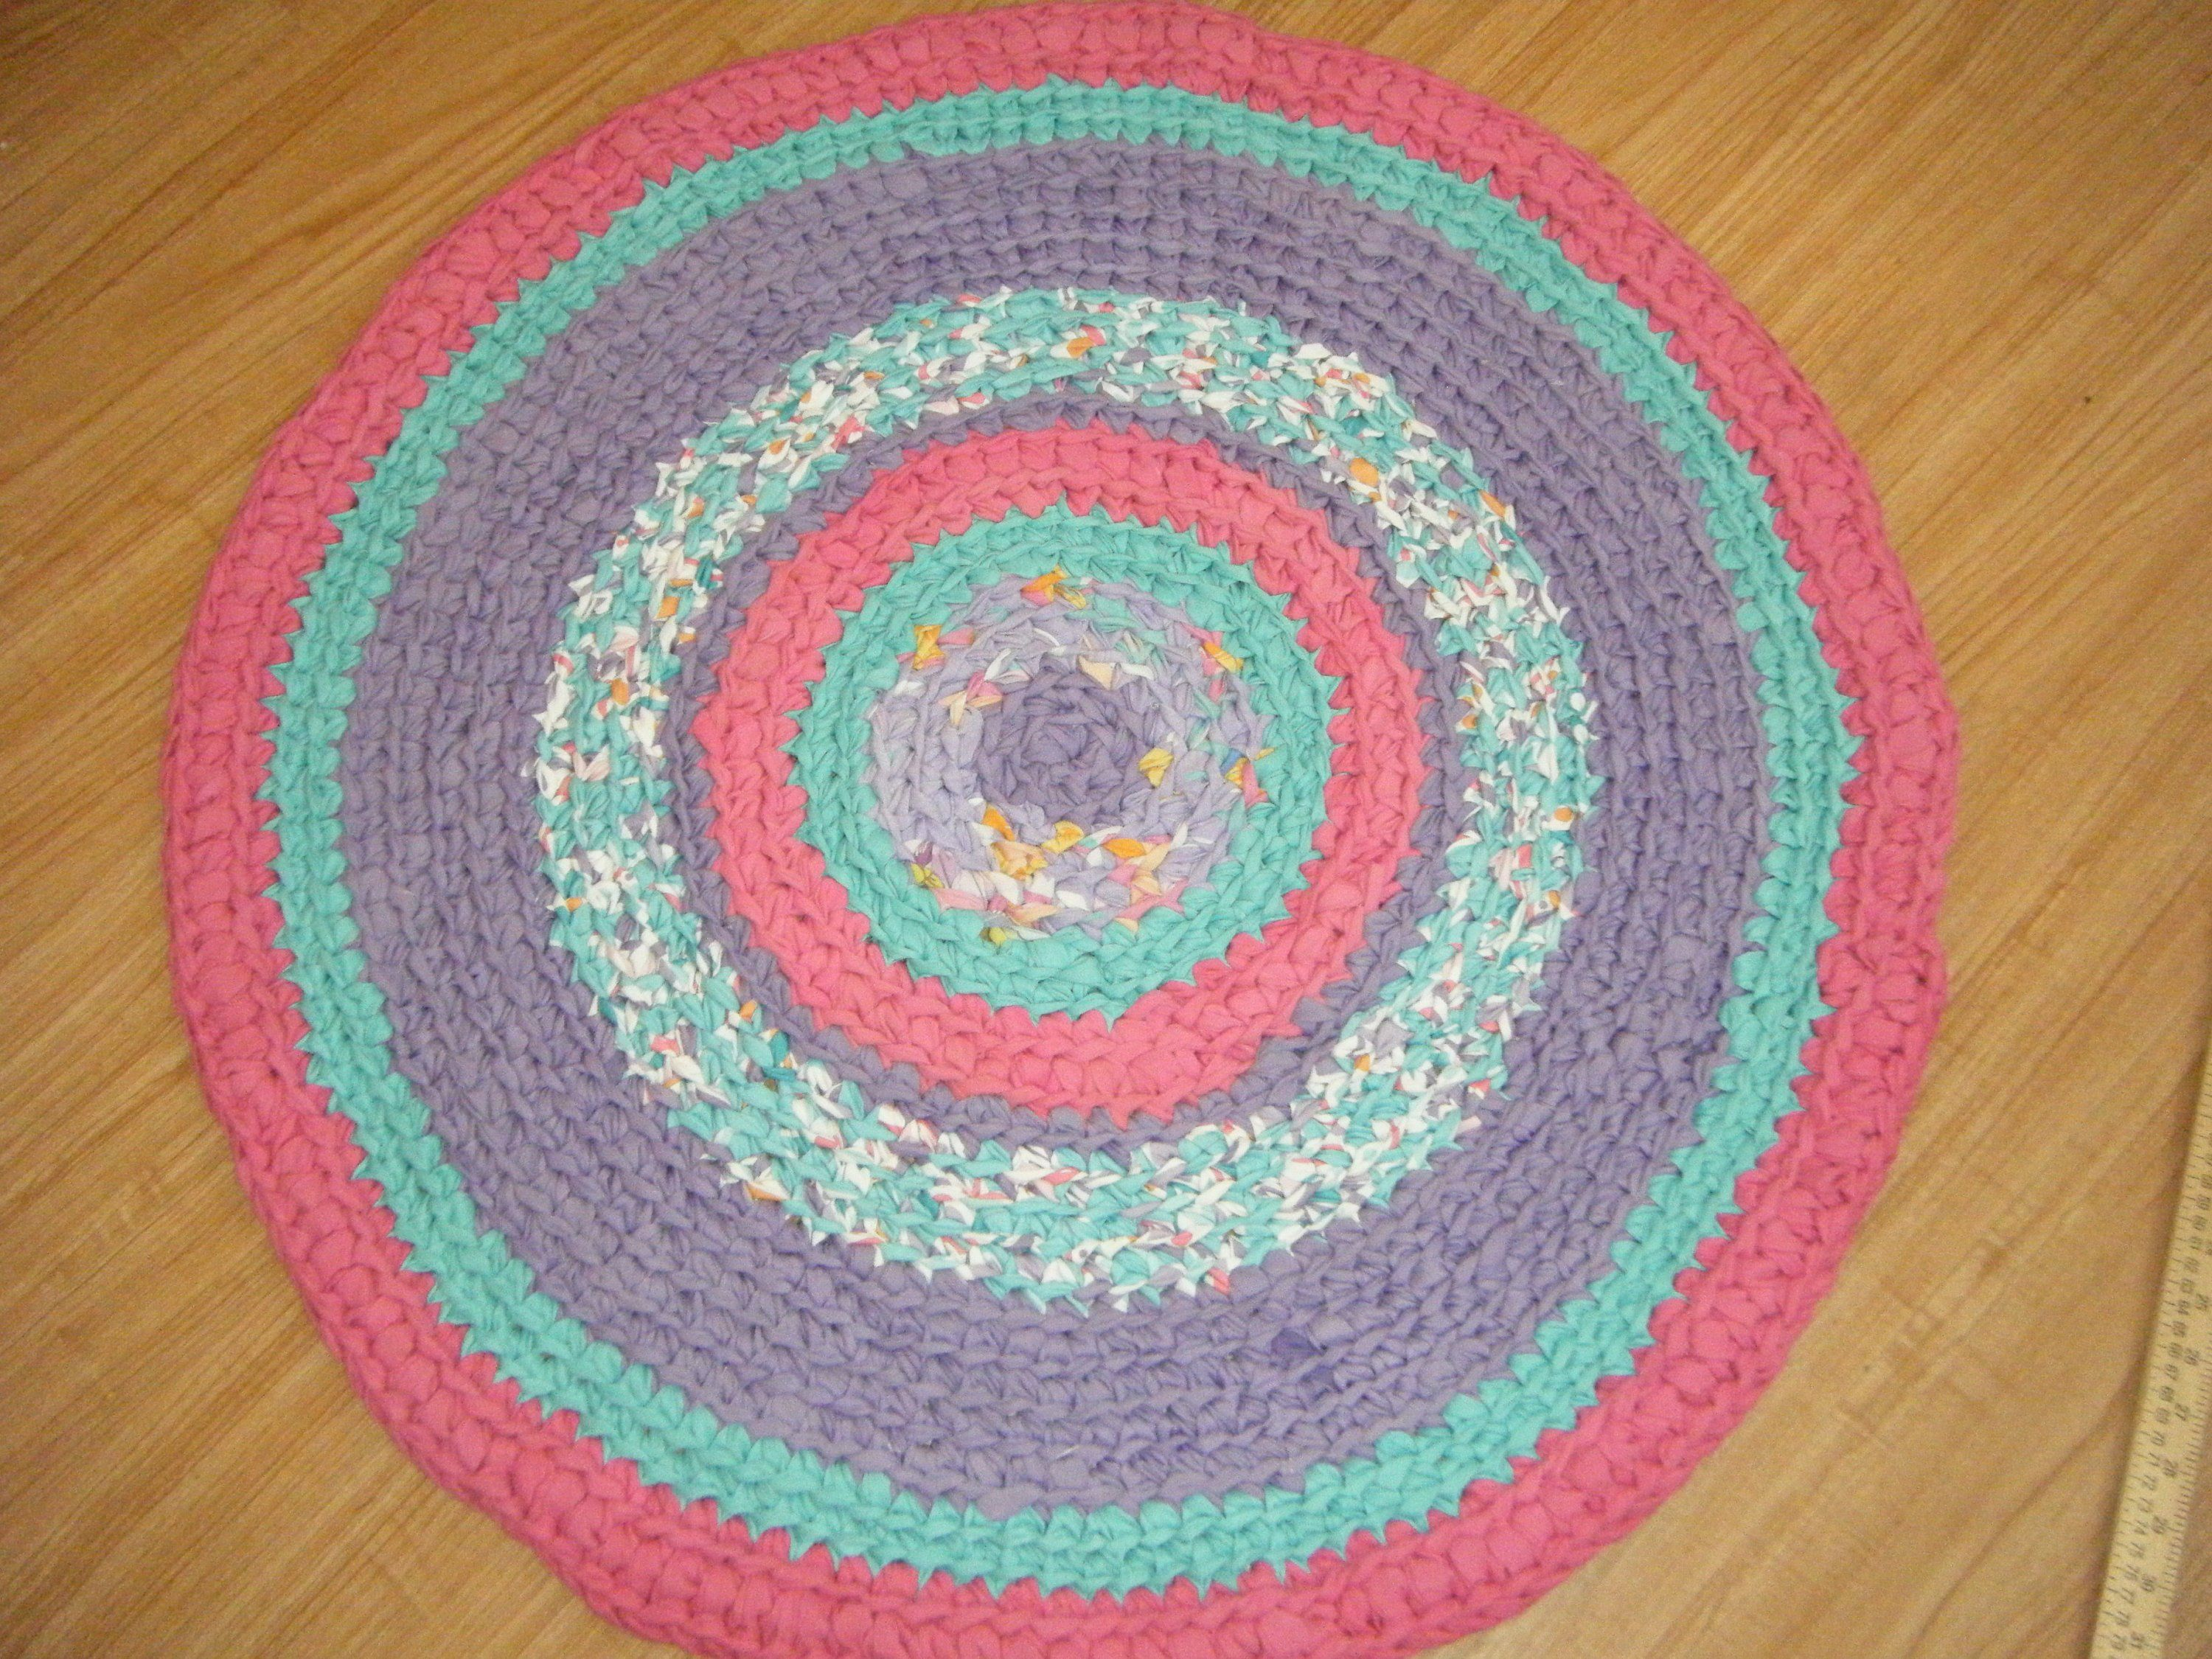 Purple And Pink Rug For A Special Girl Crochet Girls Rag Rug By Gettysburgrugroom On Etsy Fabric Rug Childrens Rugs Pink Rug